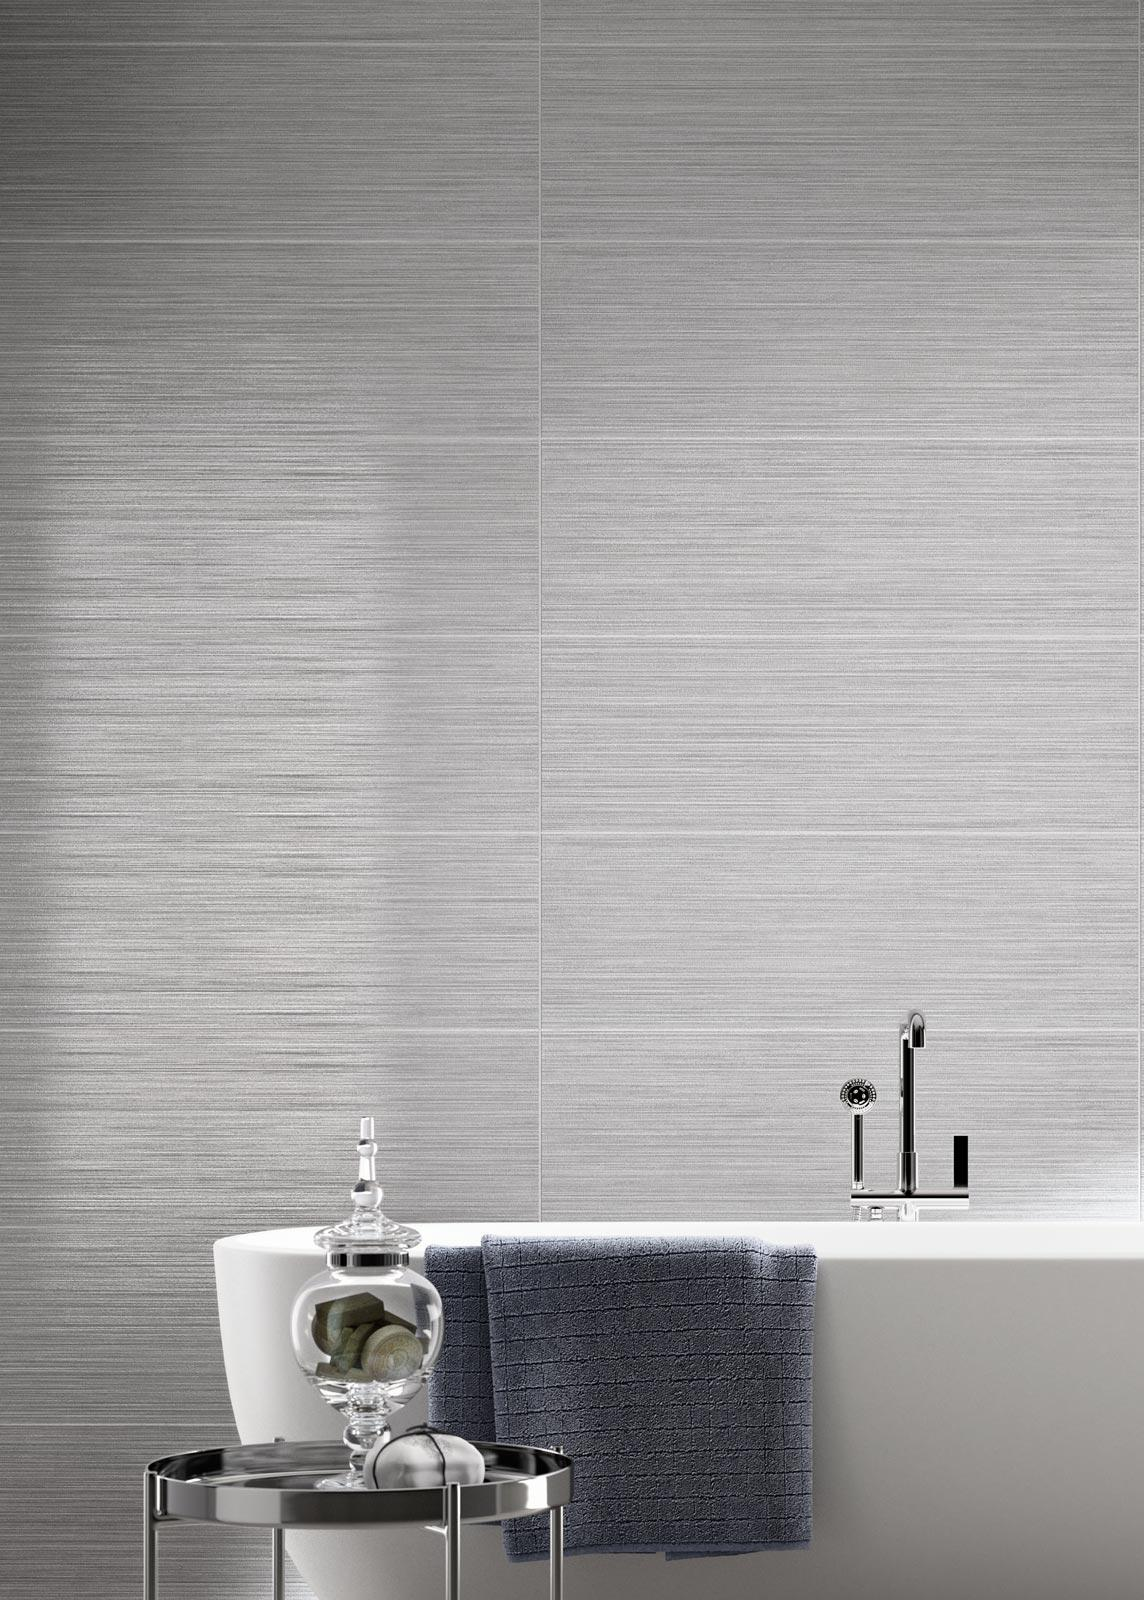 Wallpaper Collection Elegatìnt Tiles For Walls And Bathrooms Ragno